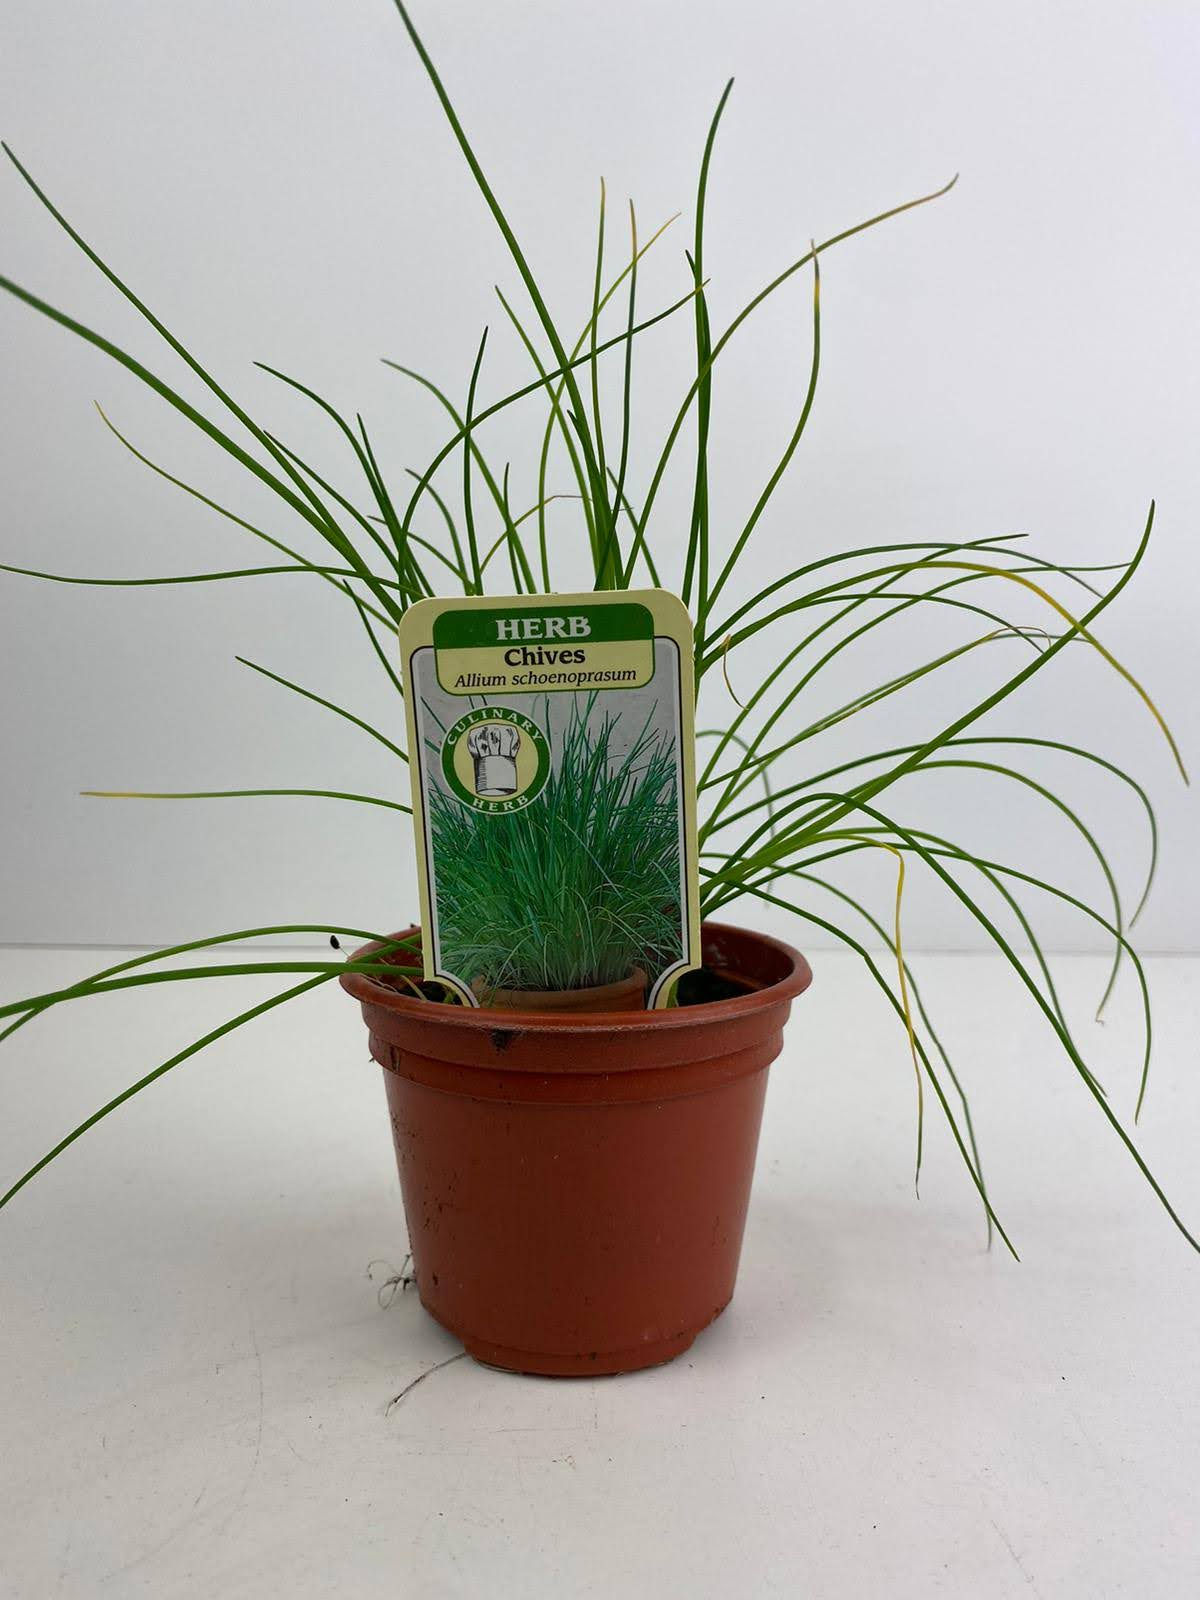 Herb Chives 9cm Pot